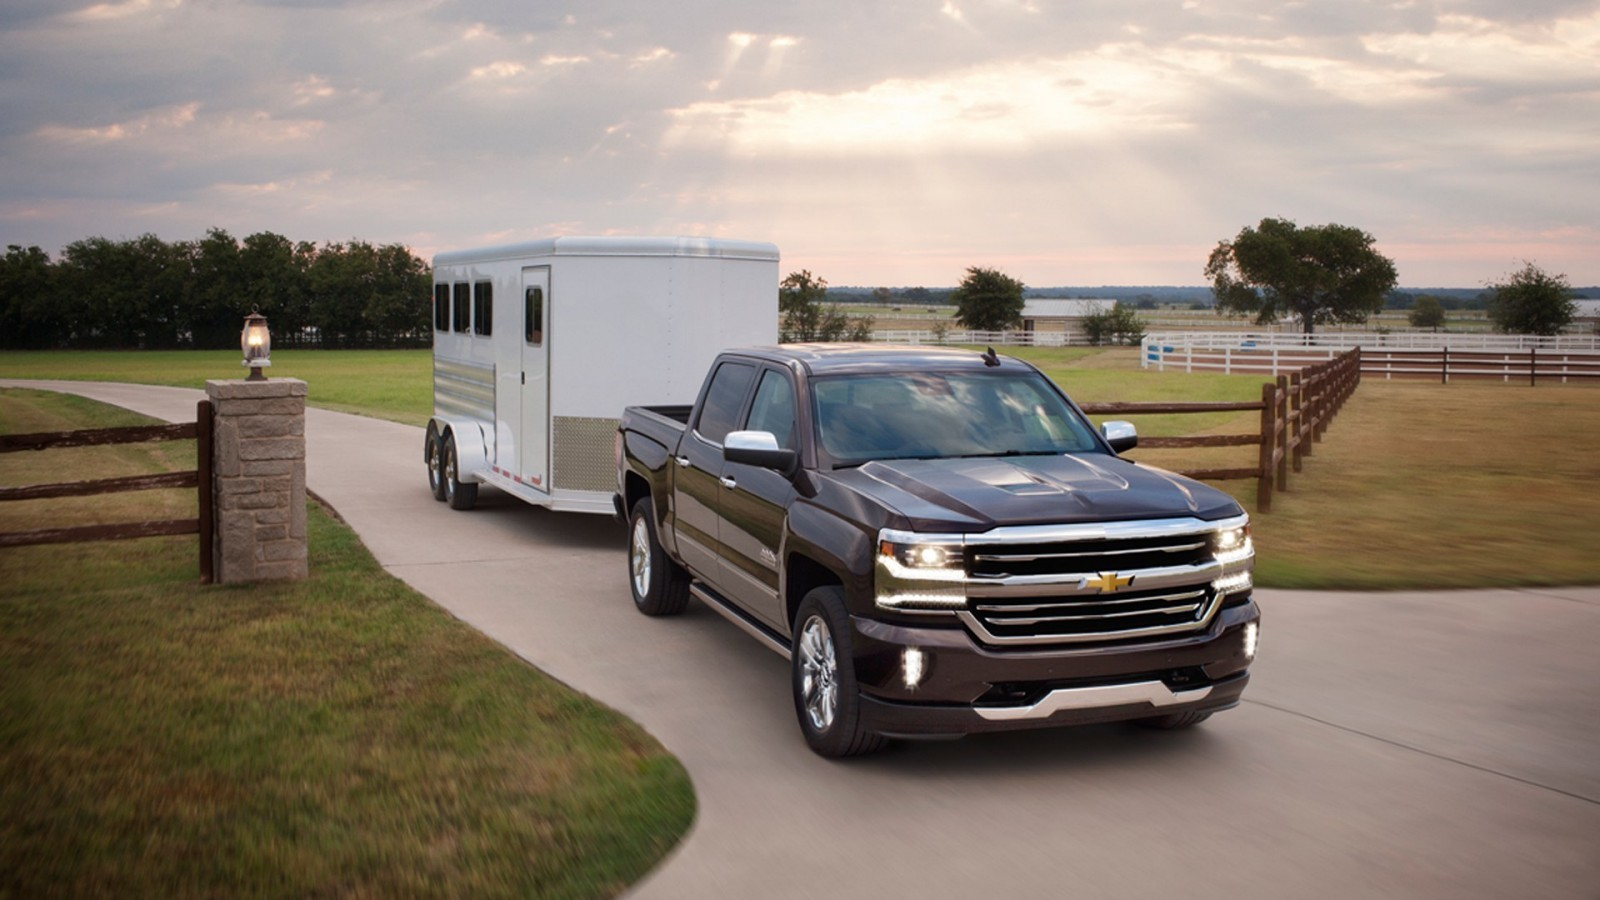 Chevy Silverado 1500 Towing Power